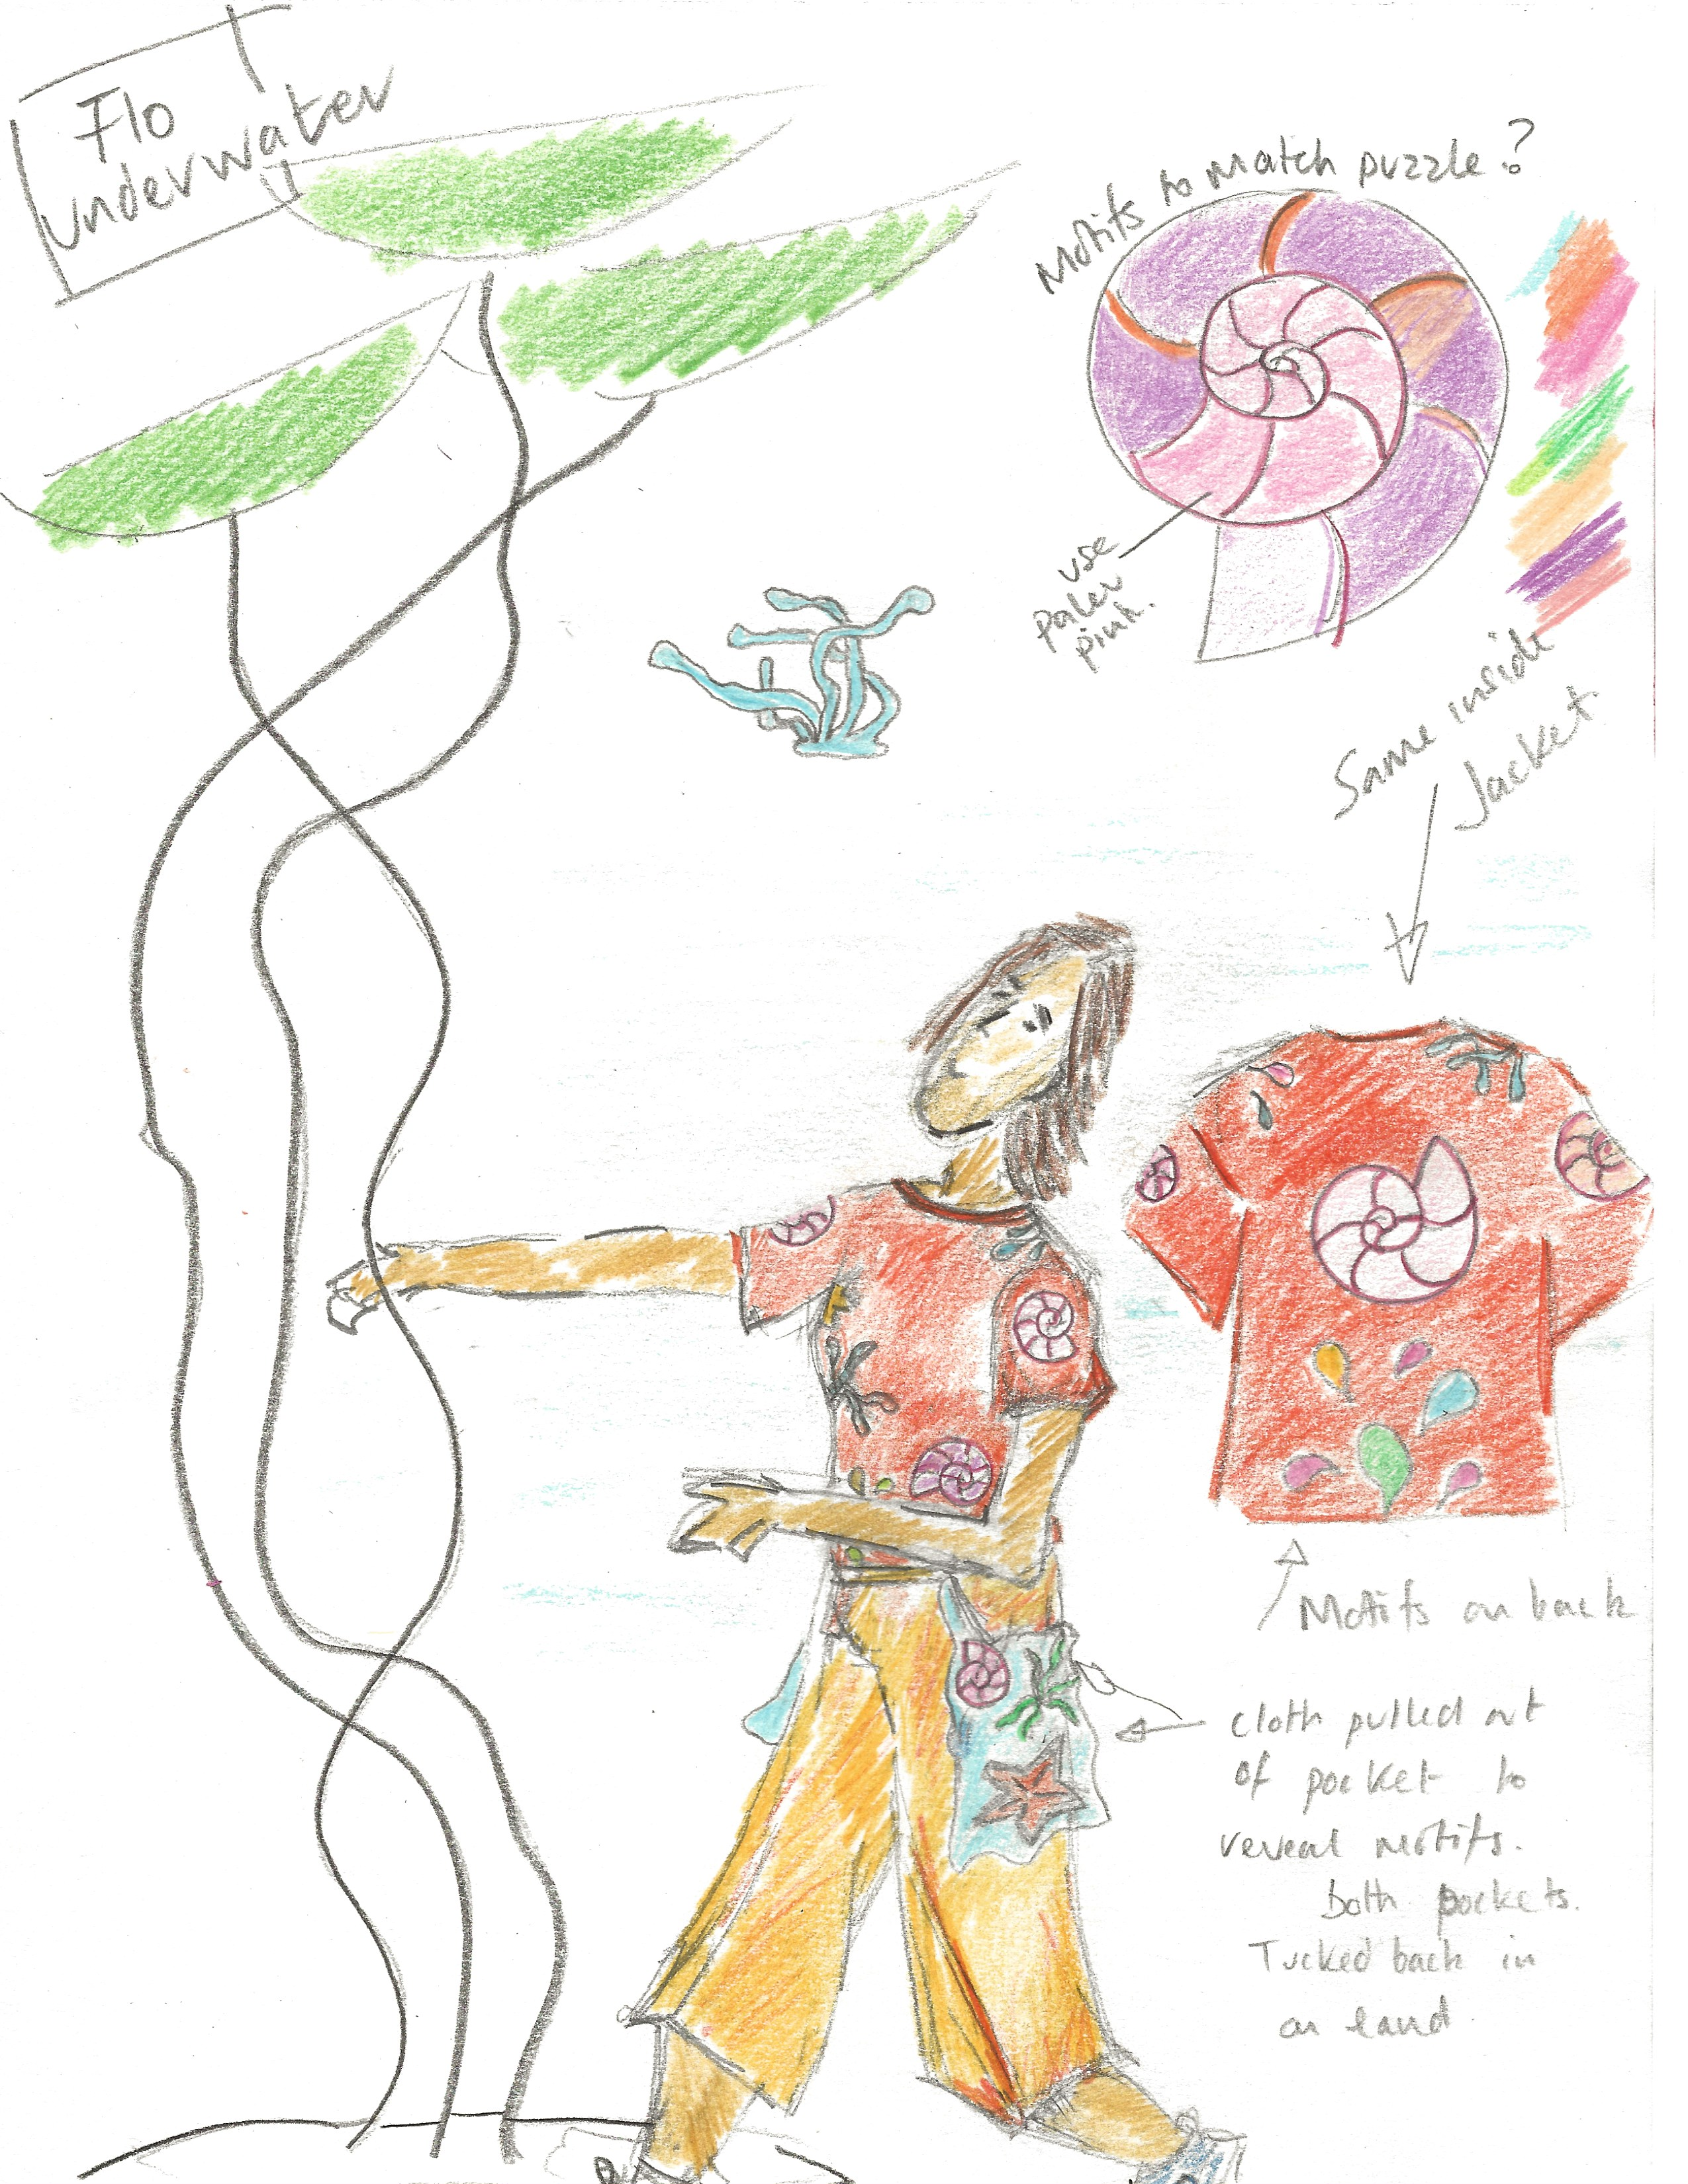 Splash by Extraordinary Bodies - Costume design illustrations by Laura Guthrie - A girl wearing red top and orange baggy trousers, adorned with sea creature emblems like shells and coral.